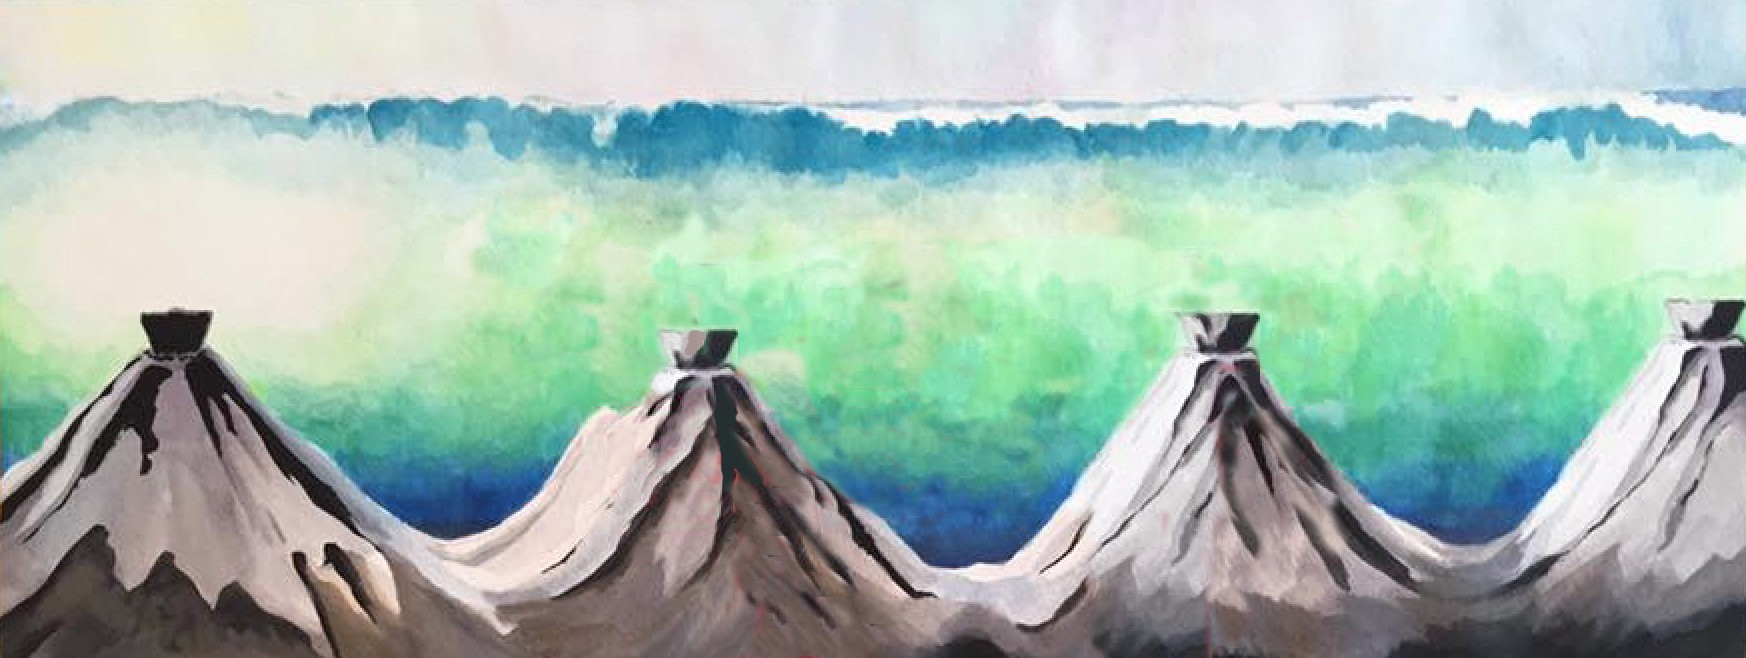 Edited version of a painting of a dream: plugged volcanoes with a cresting wave beyond them, poised to fall.